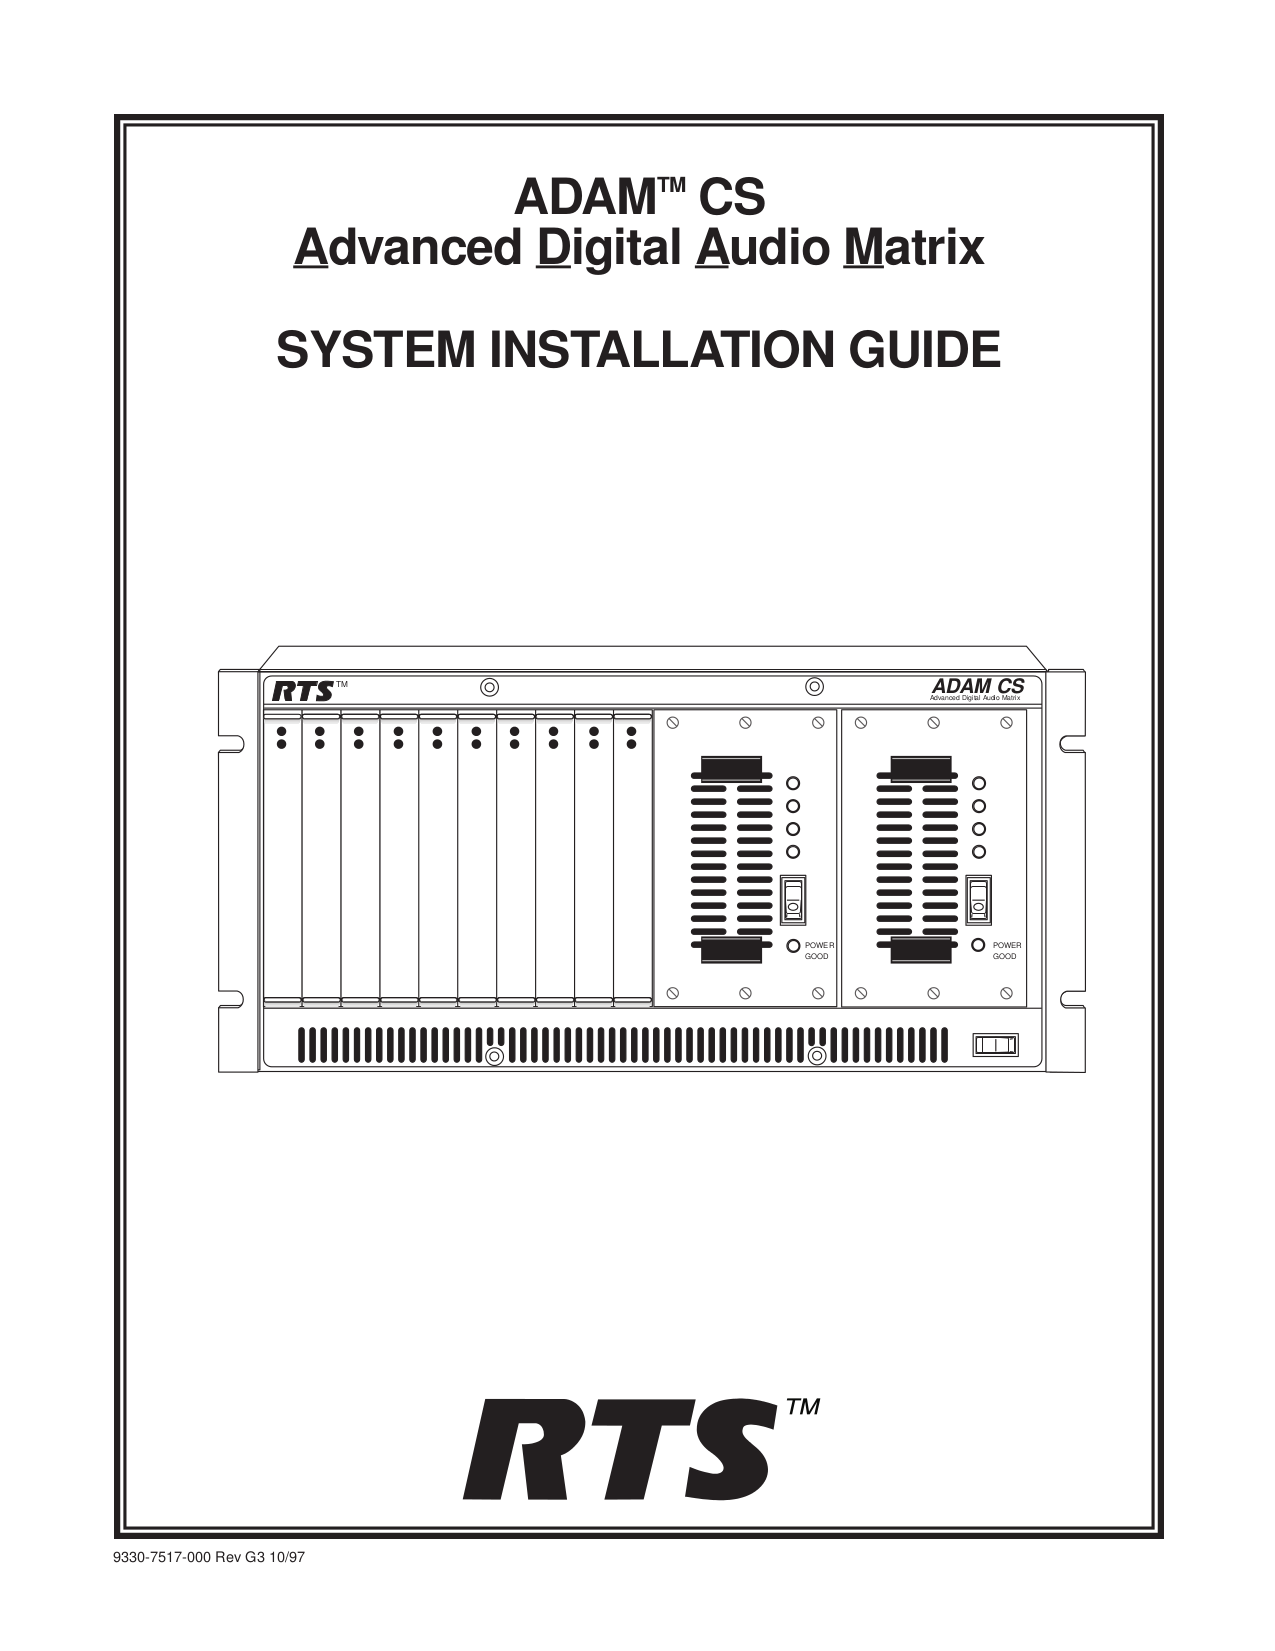 Download Free Pdf For Telex Ifb 828 Intercom System Other Manual Wiring Guide